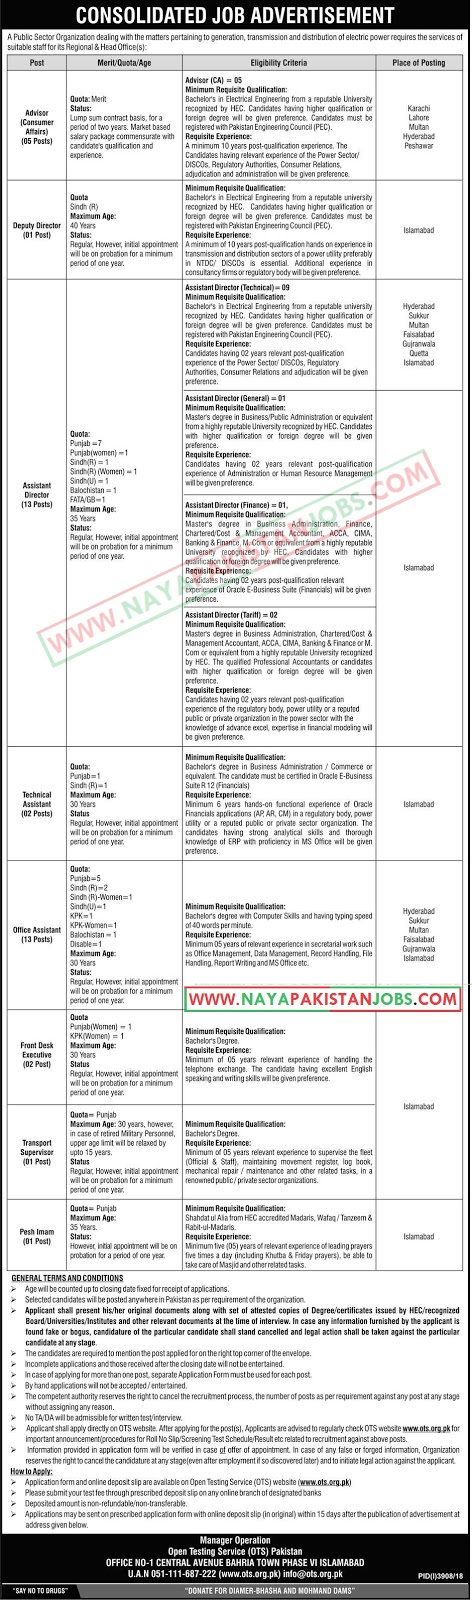 PAEC Atomic Energy Islamabad Jobs 2019 February via OTS - Naya